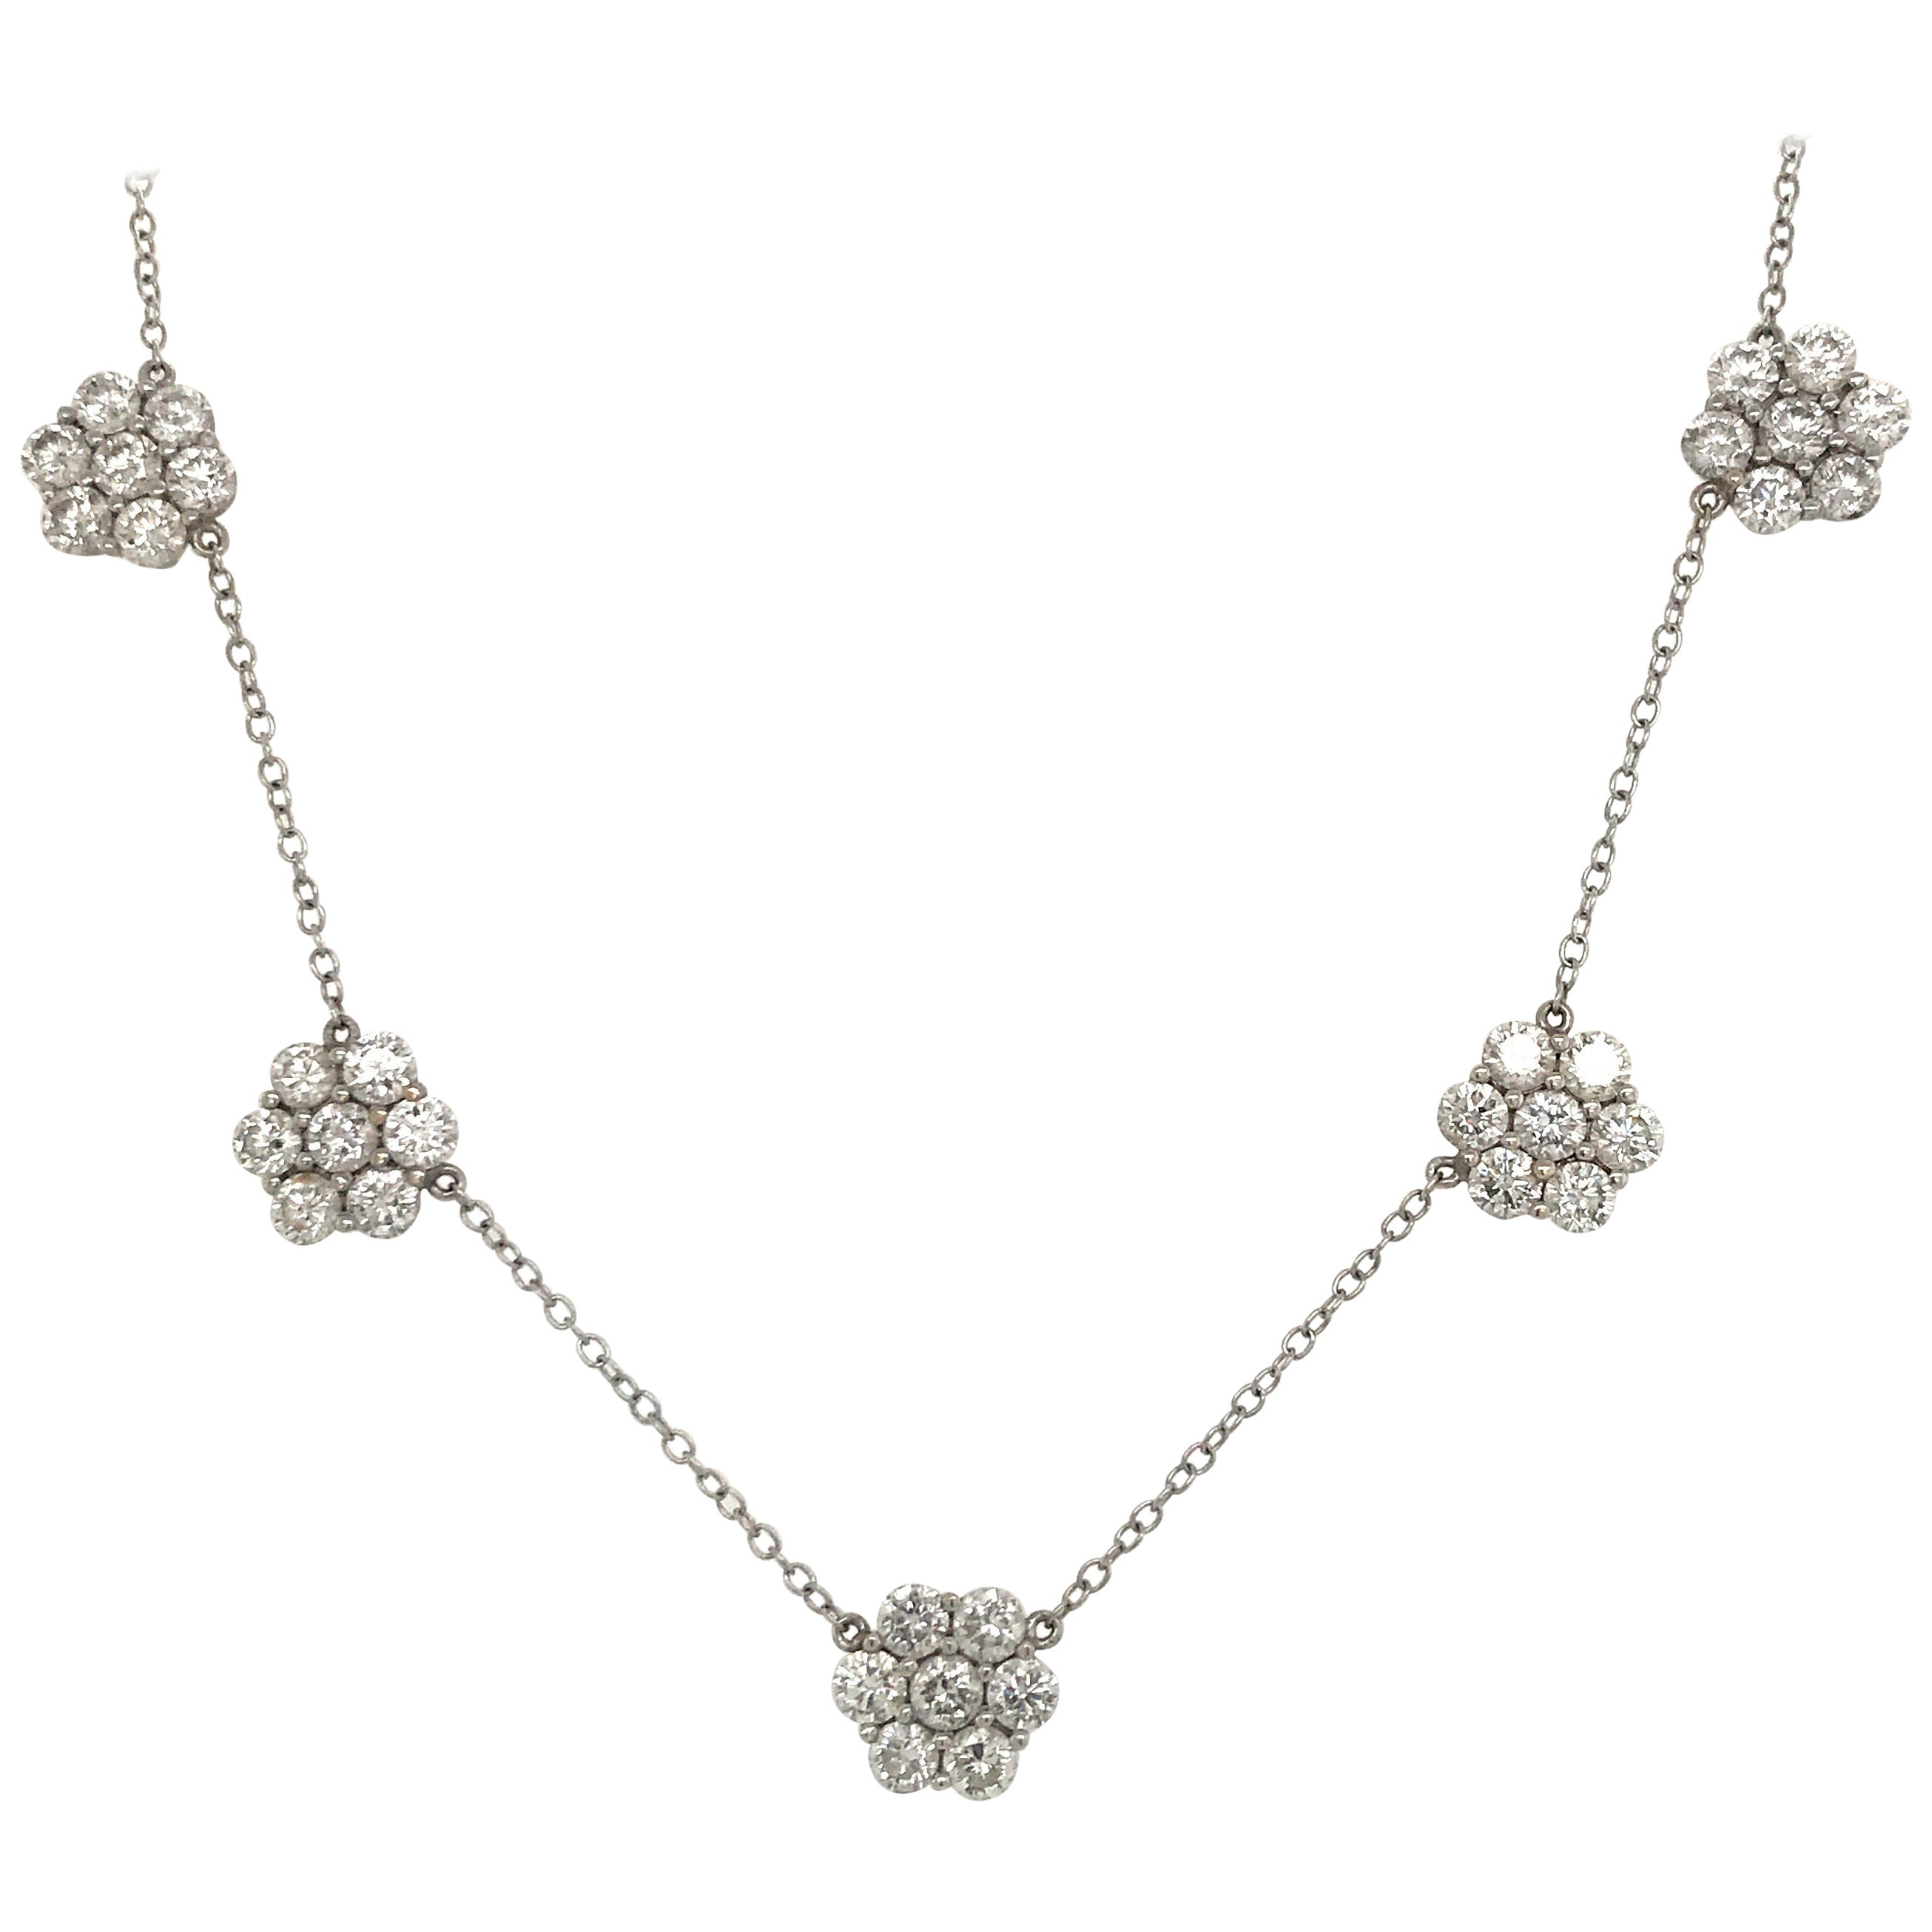 Diamond Cluster Floral Necklace 5.25 Carat 18K White Gold